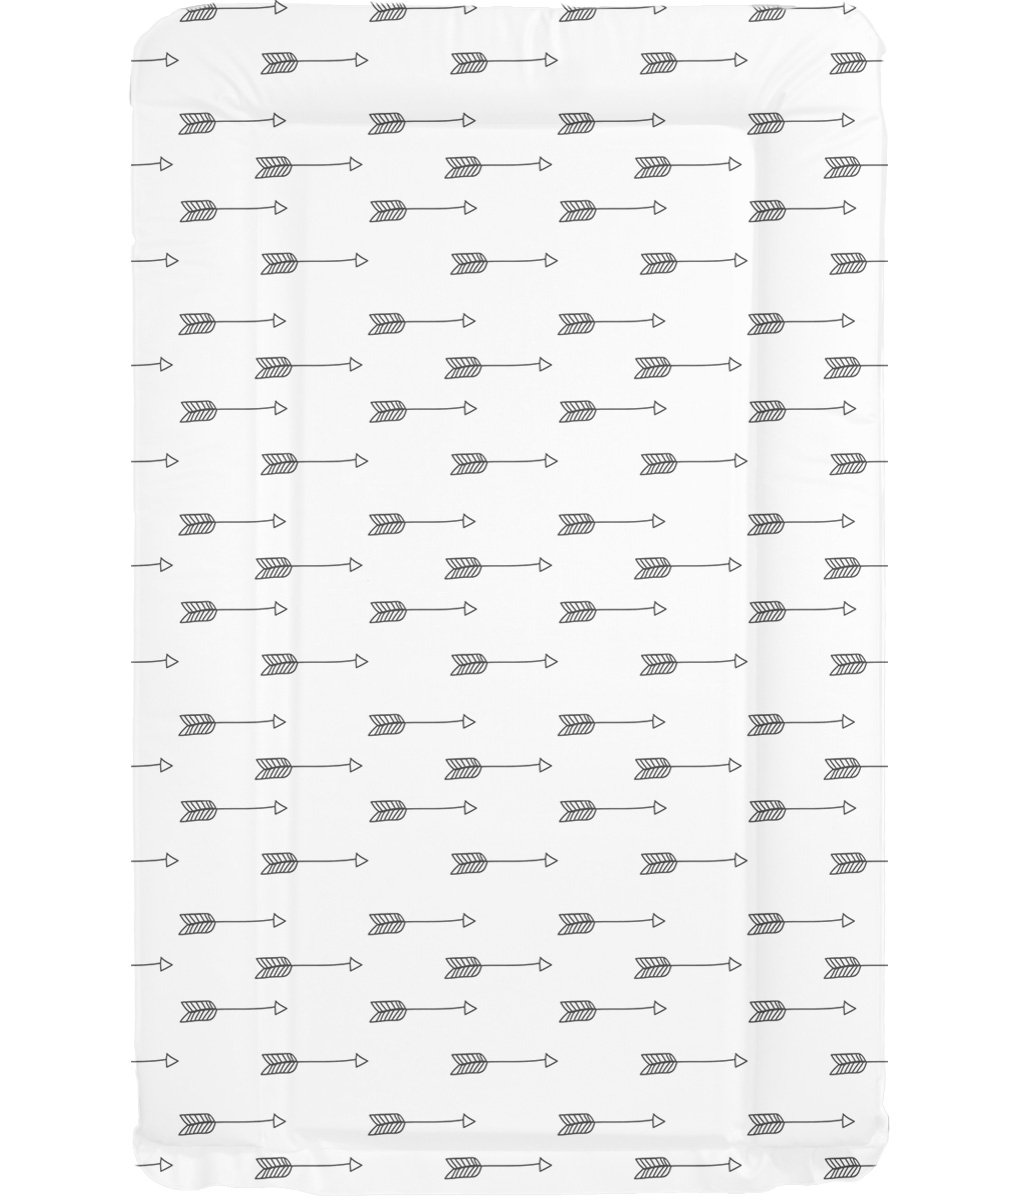 Deluxe Unisex Baby Waterproof Changing Mat with Raised Edges - Black & White Arrow Design babieswithlove